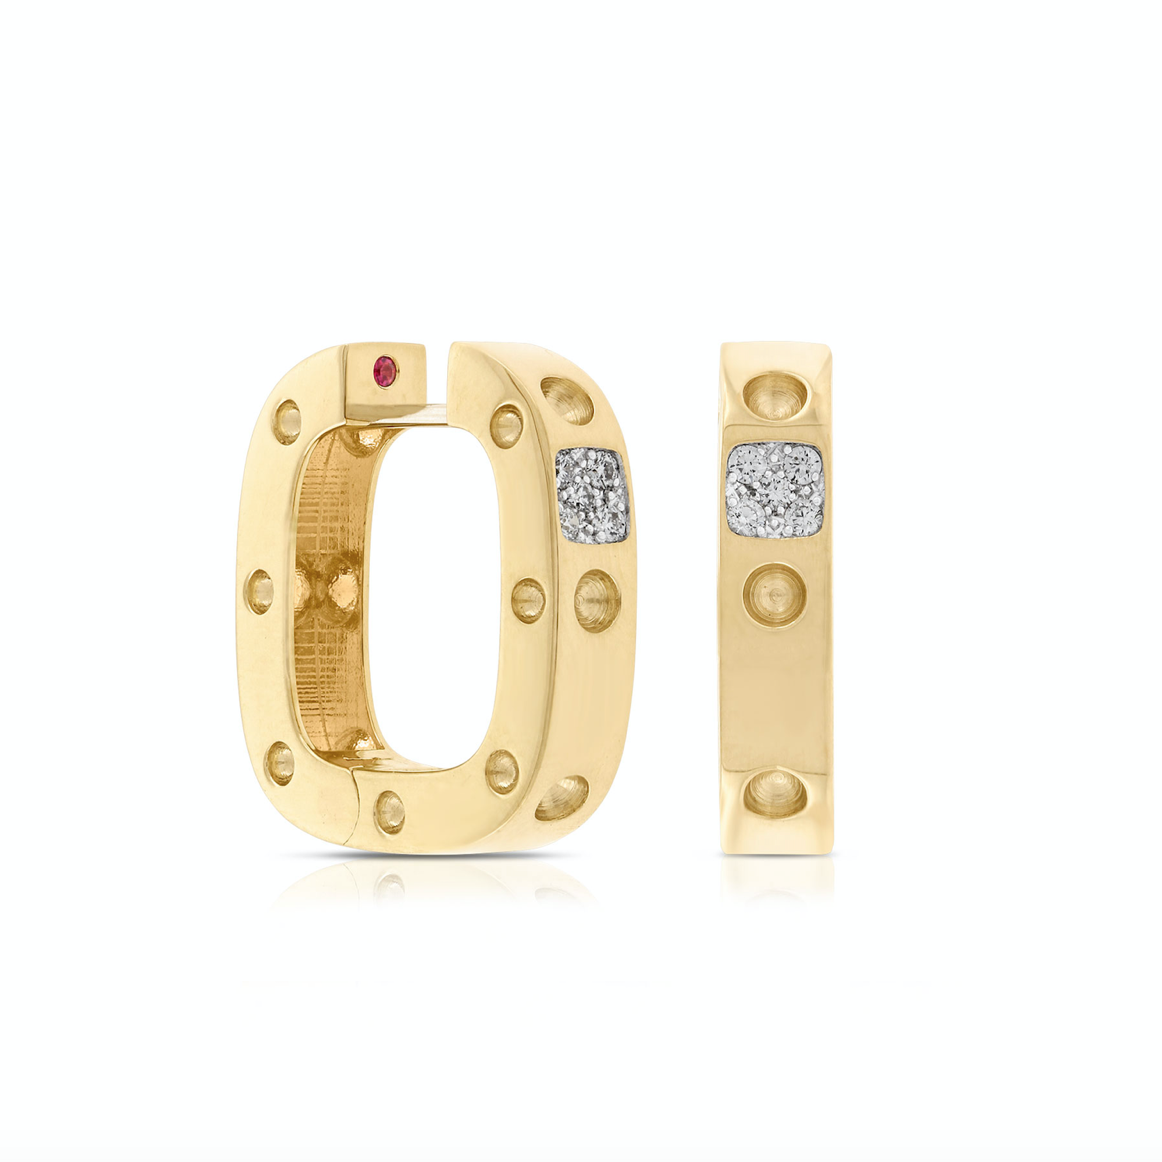 18K Yellow Gold Pois Moi Diamond Square Hoop Earrings